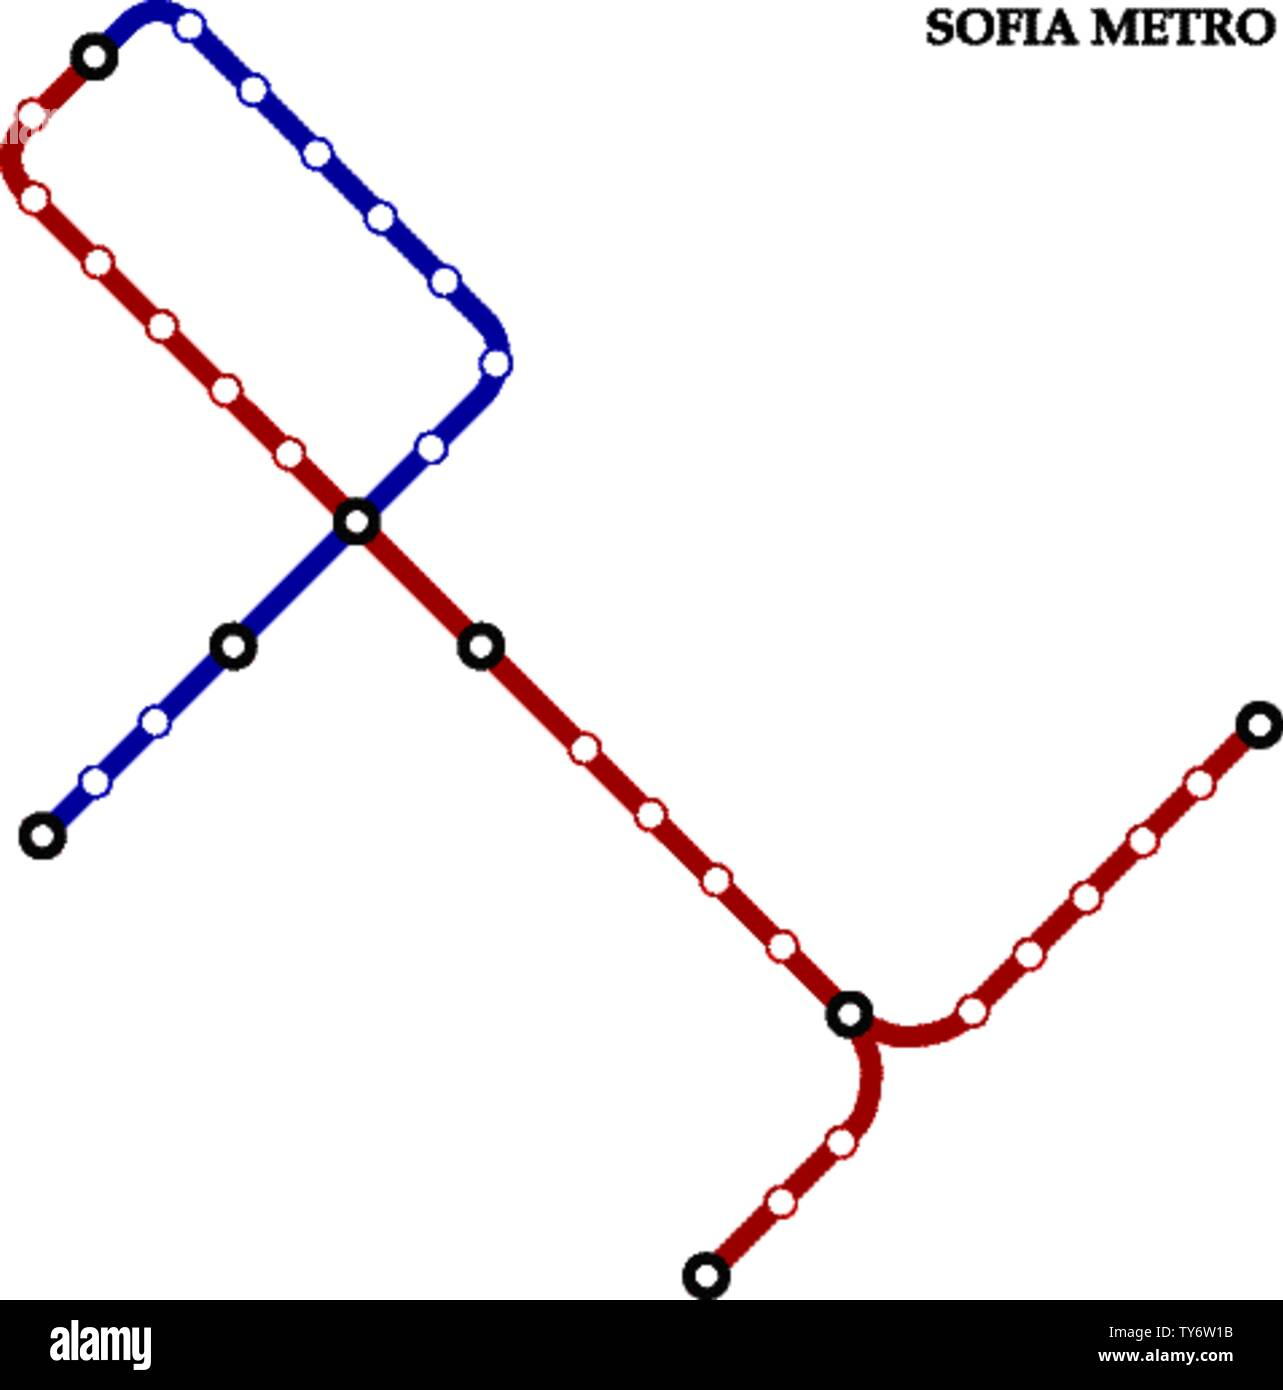 Map of the Sofia metro, Subway, Template of city transportation scheme for underground road. Stock Vector